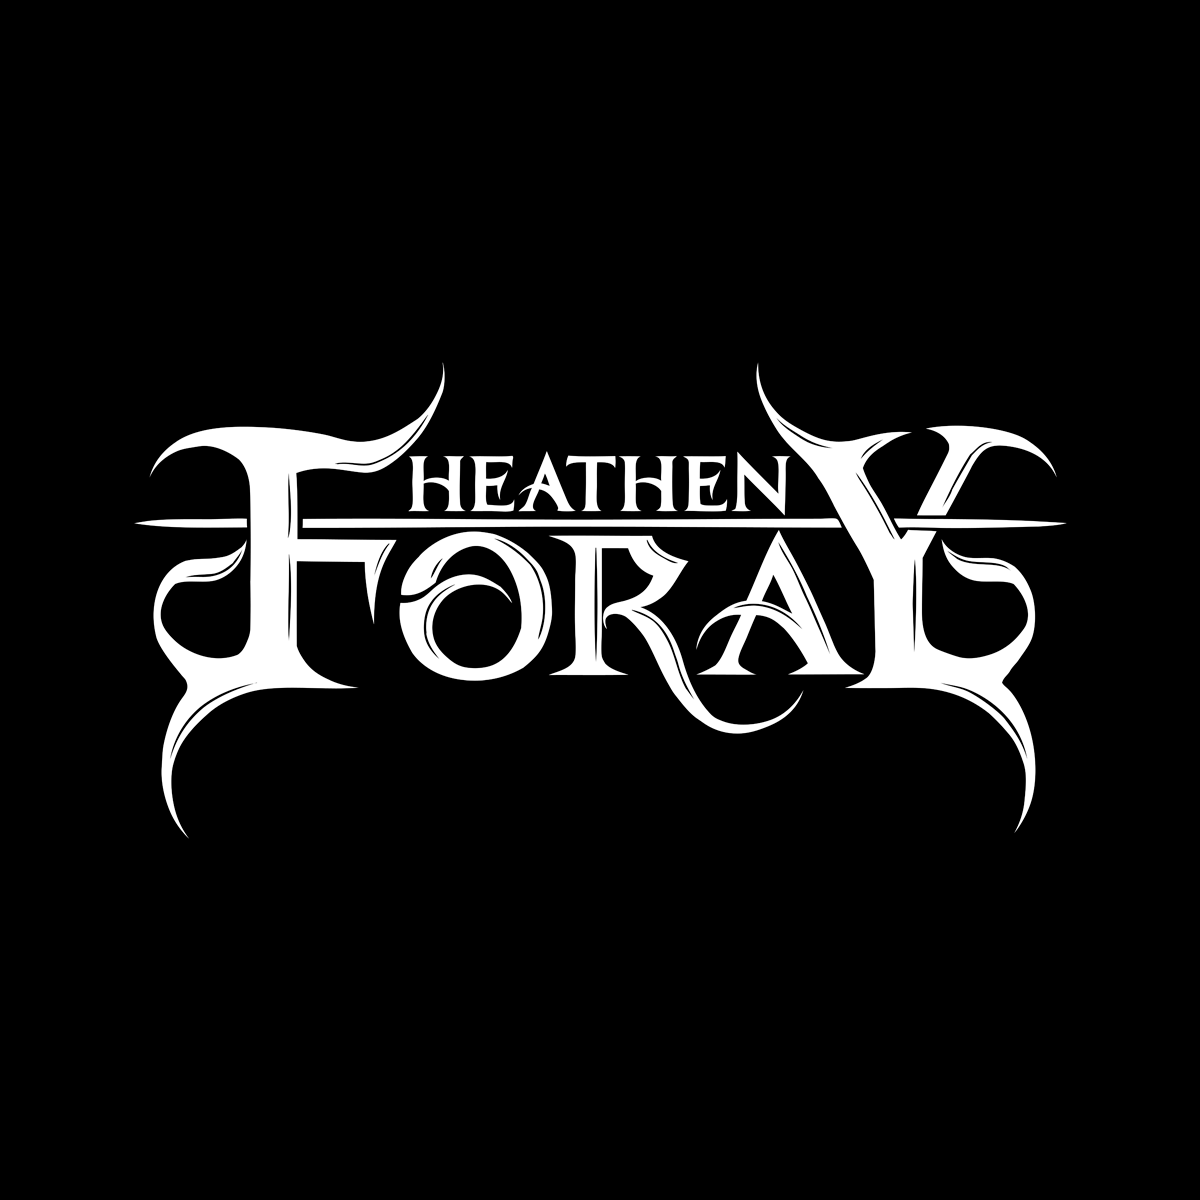 The new logo of Heathen Foray